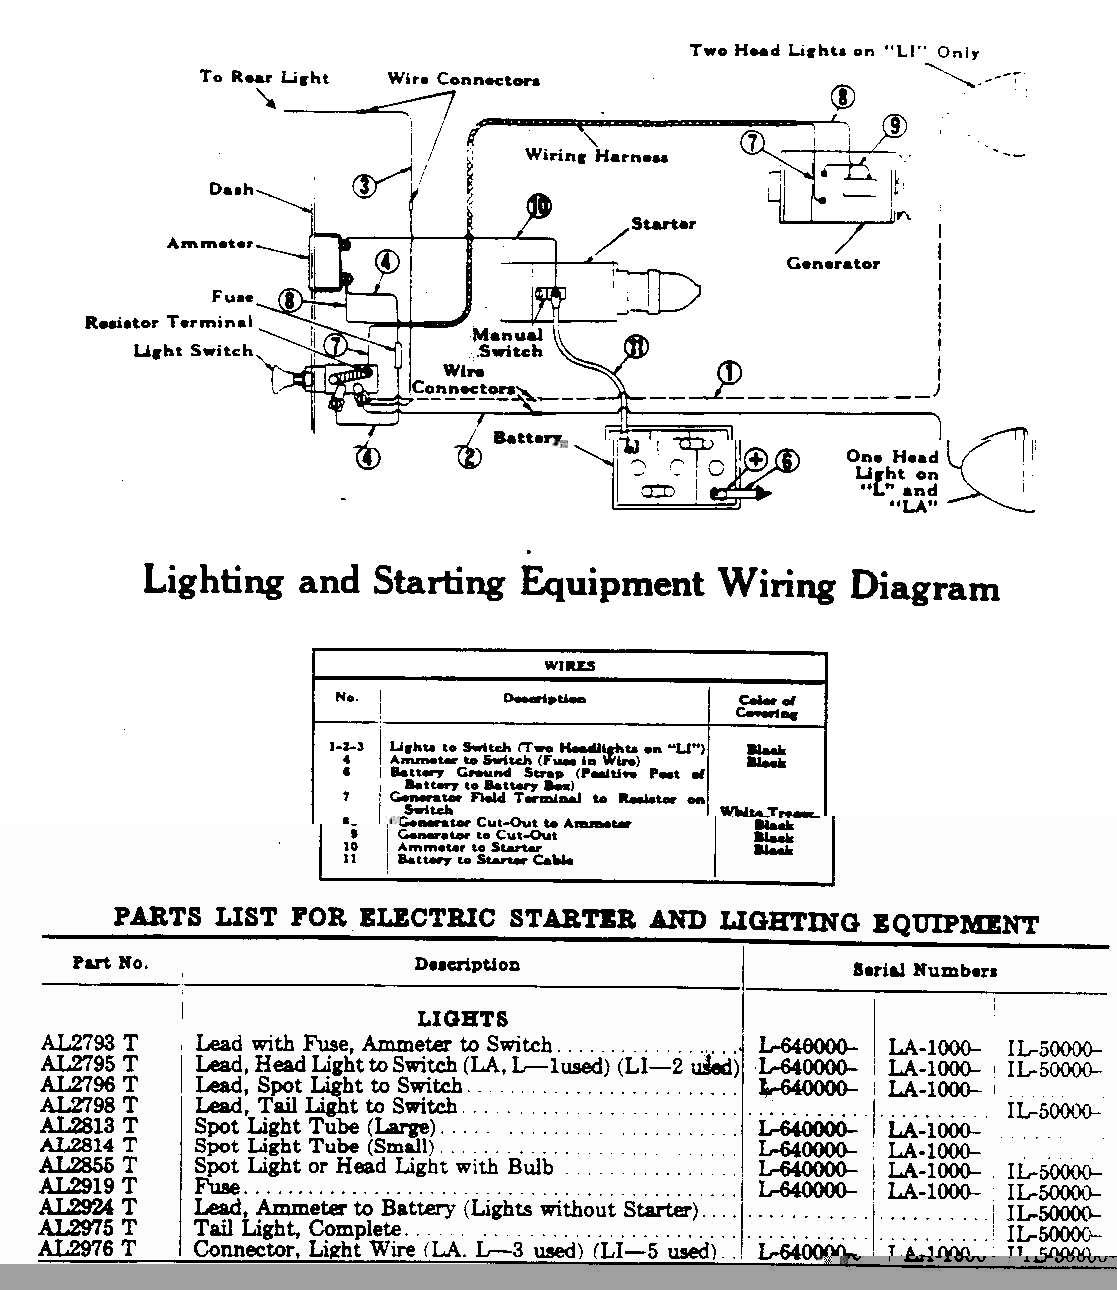 Wiring Diagram for the John Deere ...